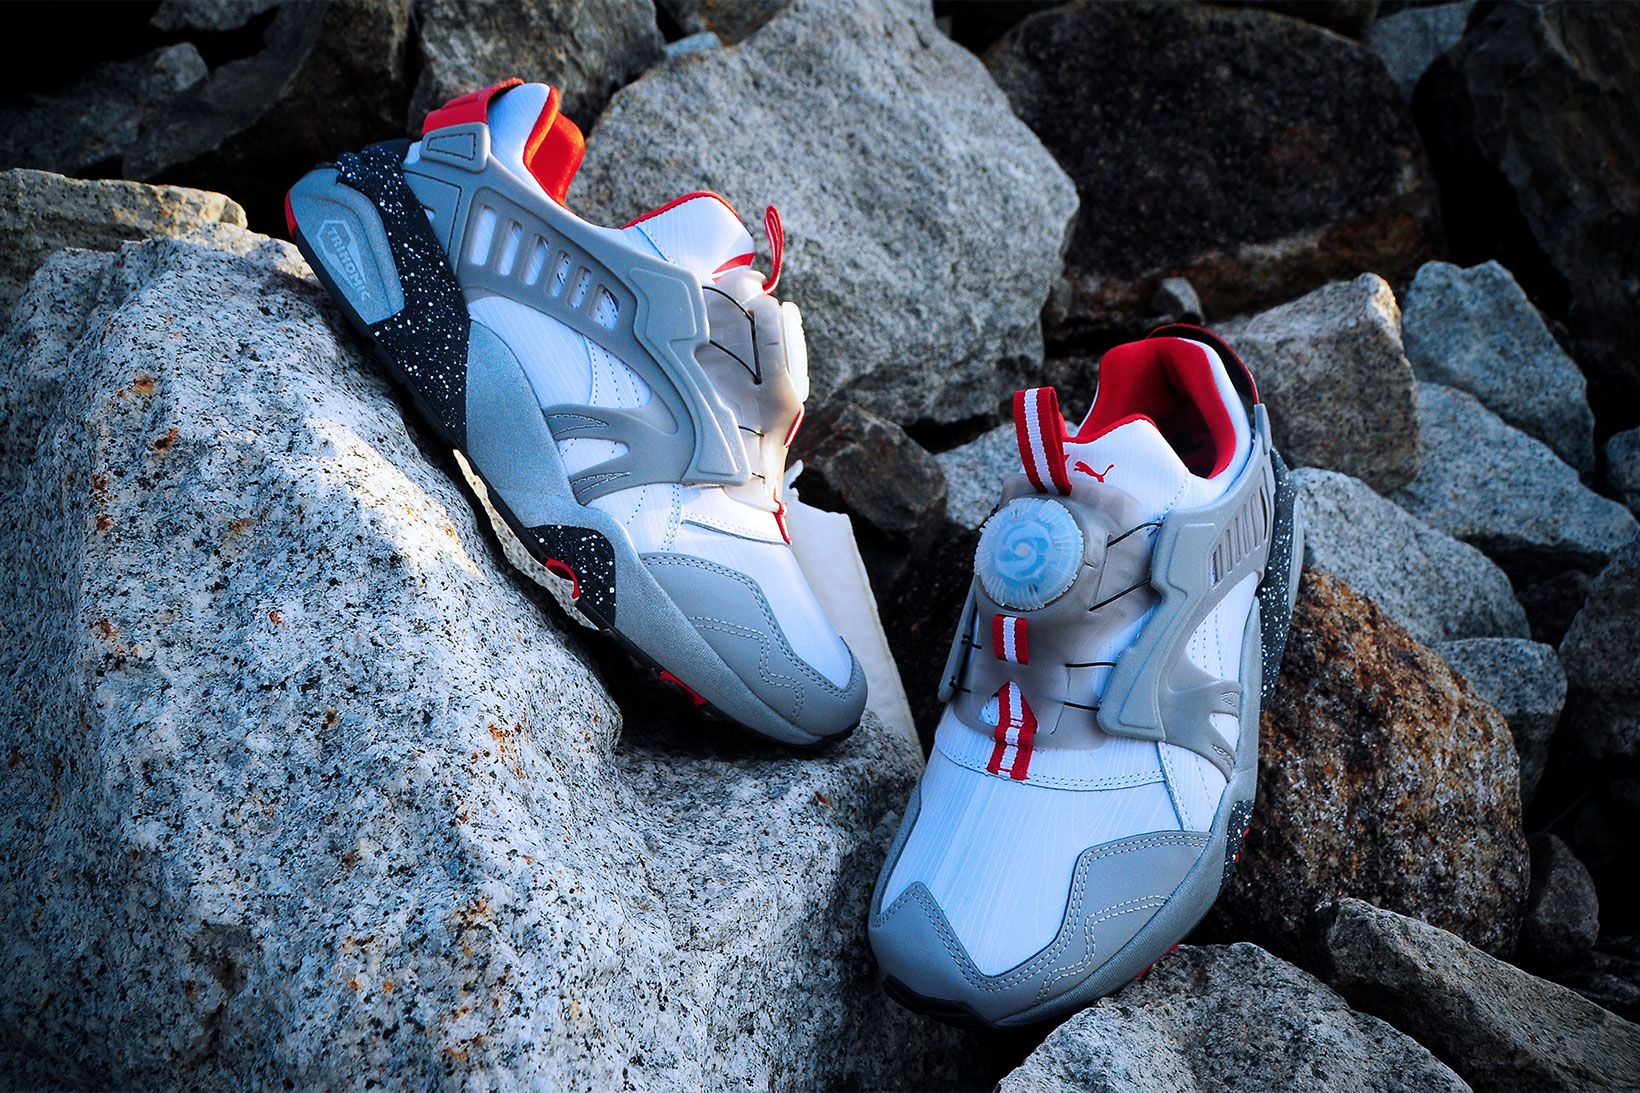 Limited Edt. x PUMA Continue Their Partnership With A Collection of Disc Blaze Sneakers